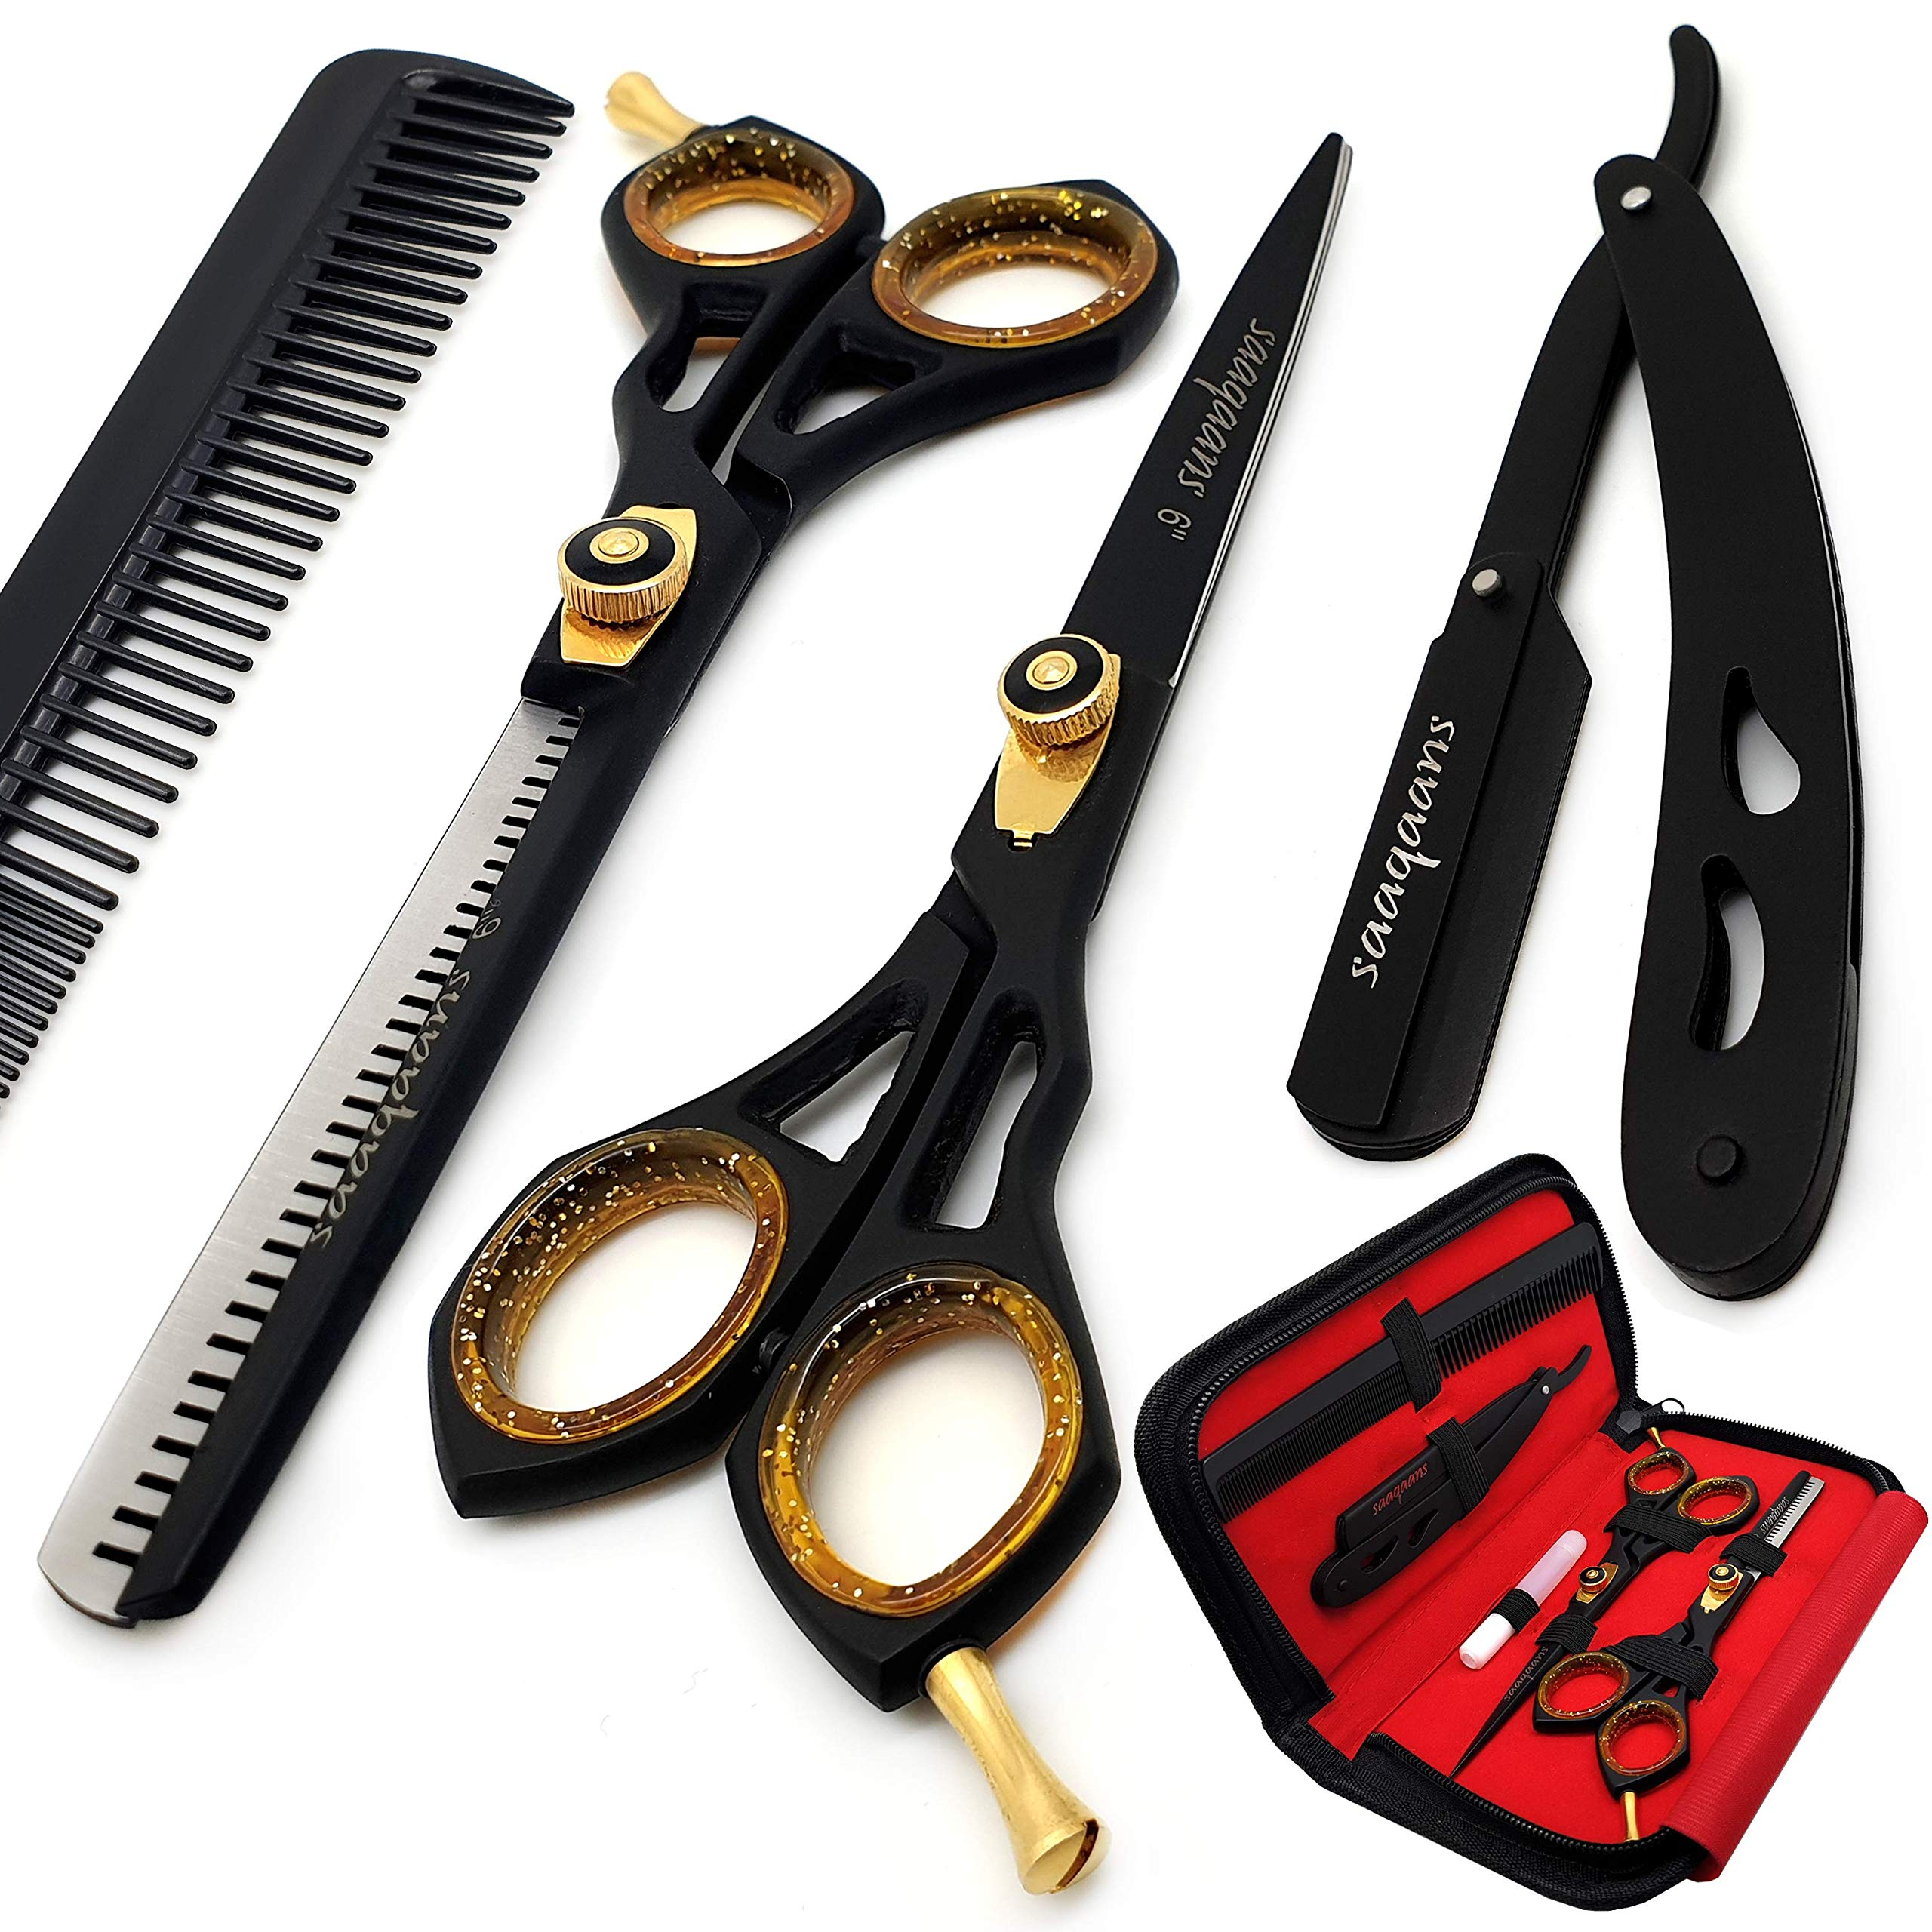 Saaqaans Professional Hair Cutting Scissors Set - Haircut Scissor for Barber/Hairdresser/Hair Salon + Thinning/Texture Hairdressing Shear for Beautician + Straight Edge Razor + 10 Blades with Case by Saaqaans